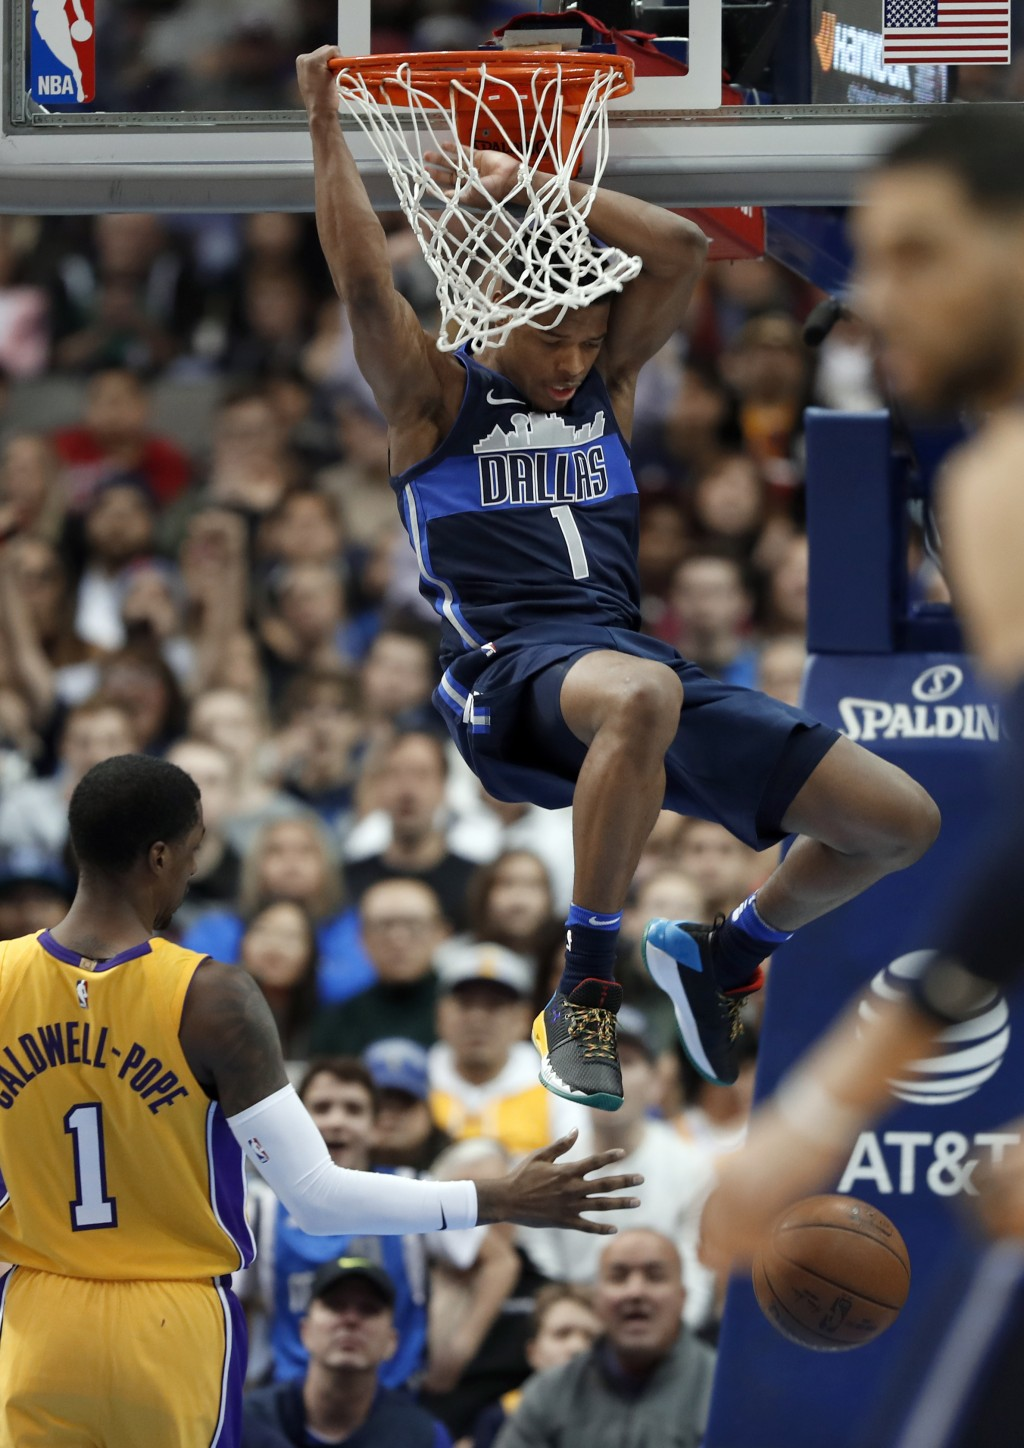 Los Angeles Lakers guard Kentavious Caldwell-Pope (1) watches as Dallas Mavericks guard Dennis Smith Jr., top, dunks in the first half of an NBA baske